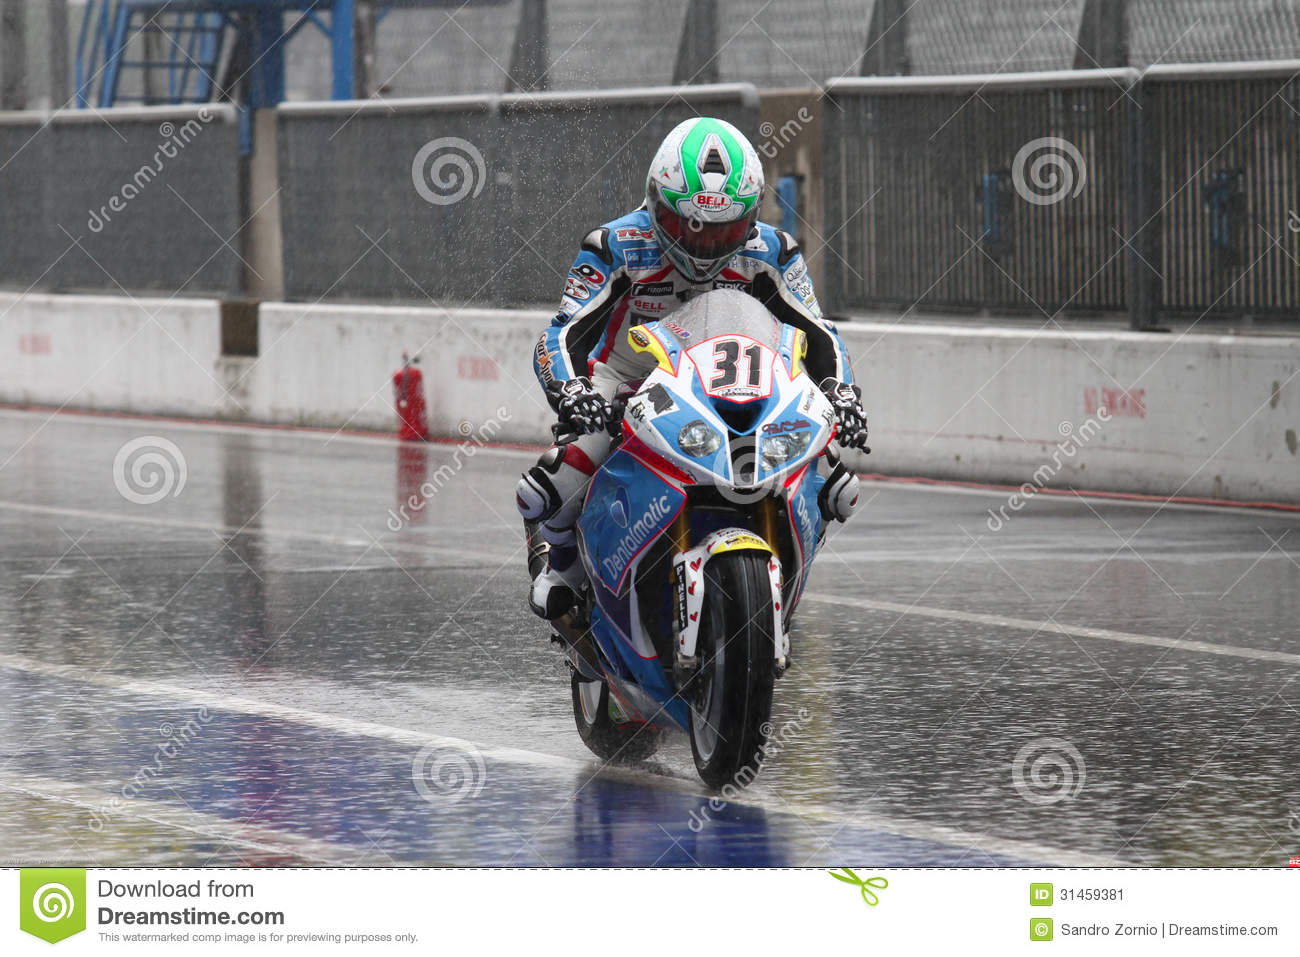 Vittorio Iannuzzo #31 on BMW S1000 RR with Grillini DENTALMATIC SBK Team WSBK